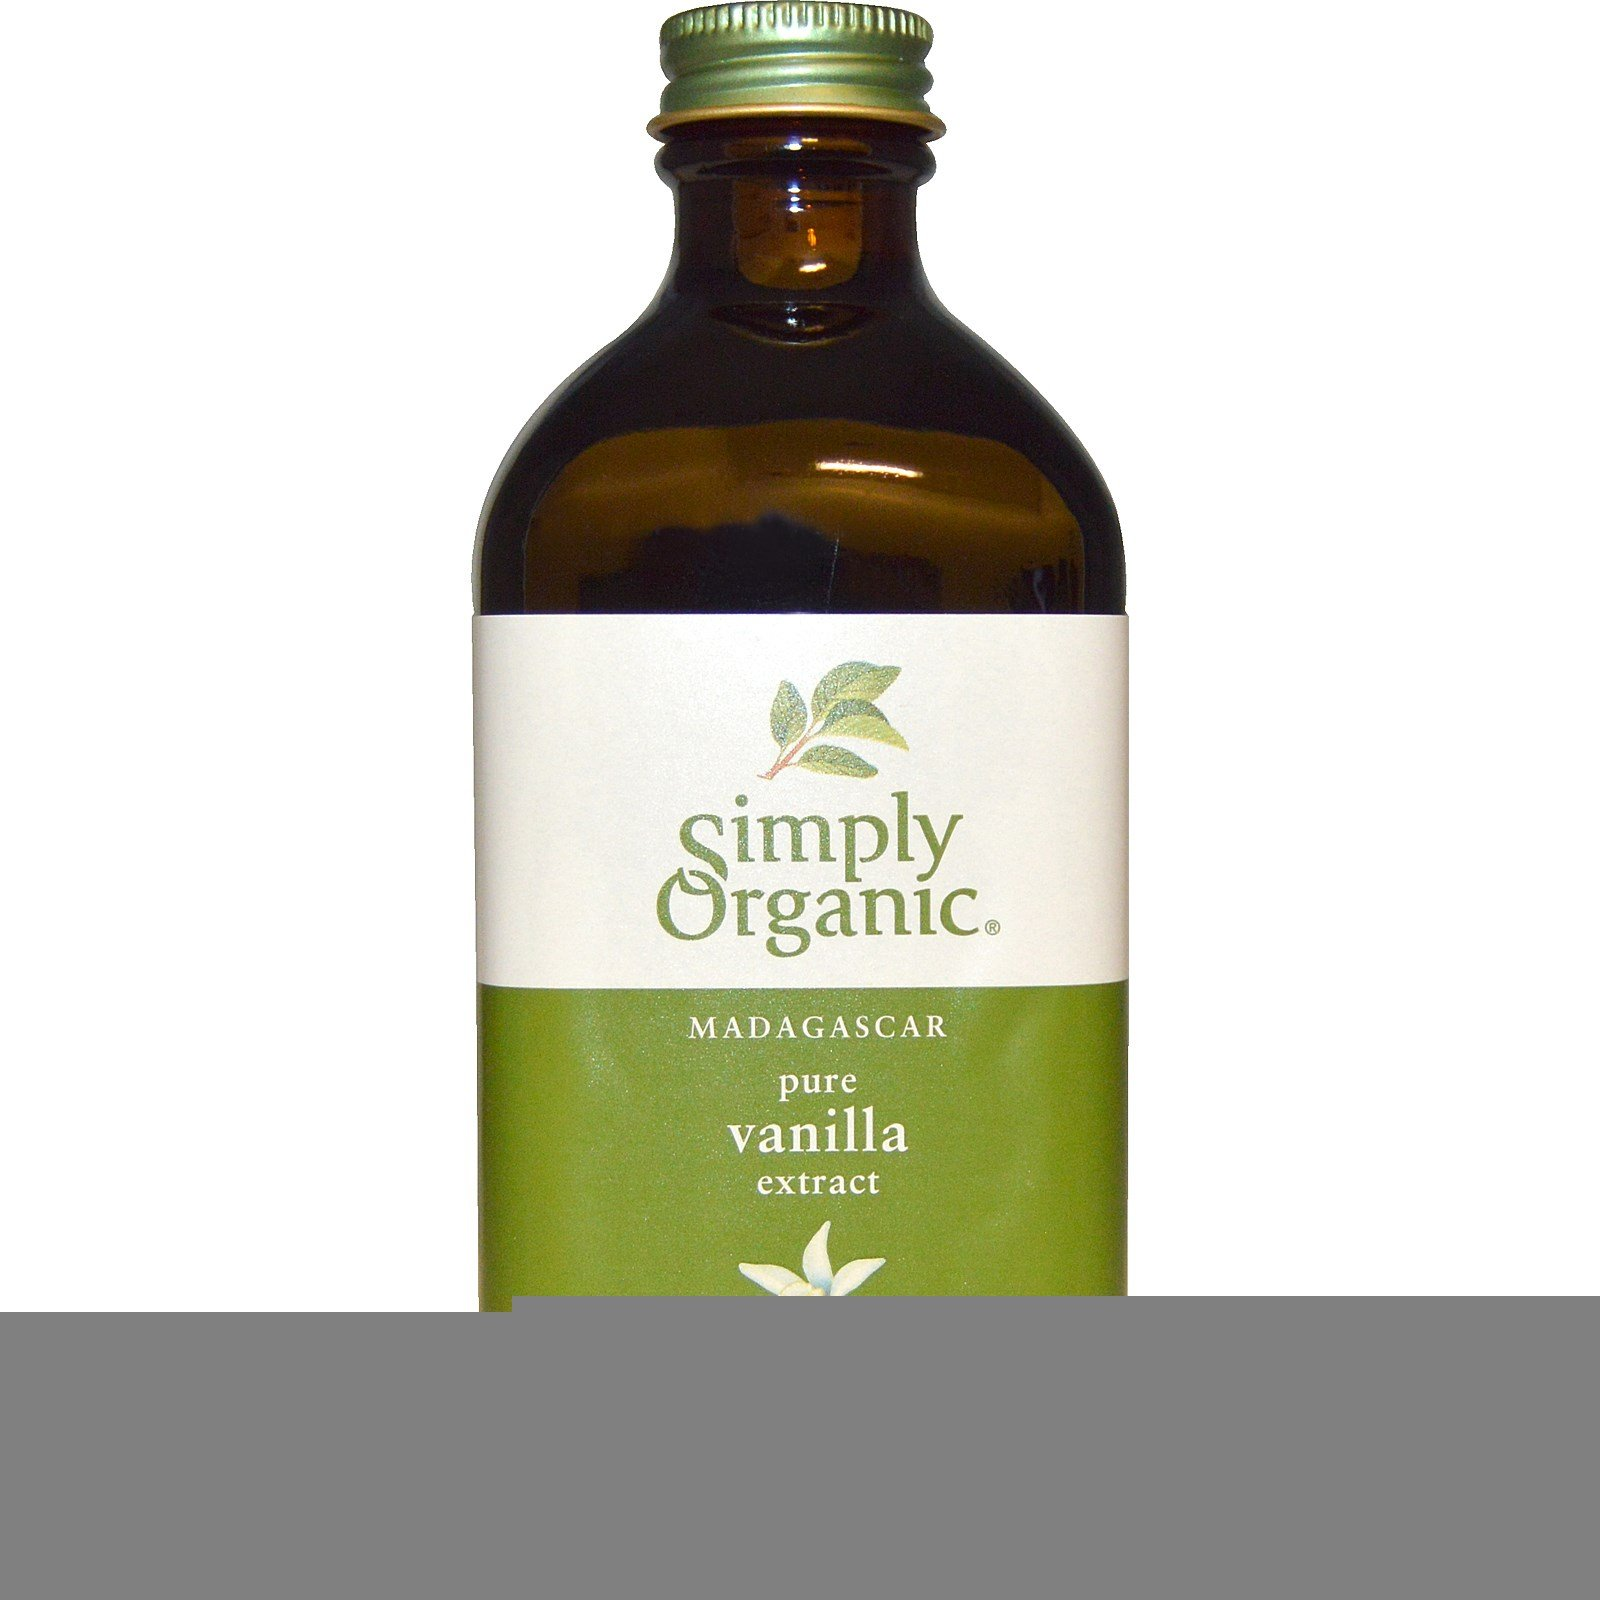 Simply Organic, Pure Vanilla Extract, Madagascar, 8 fl oz(Pack of 3)